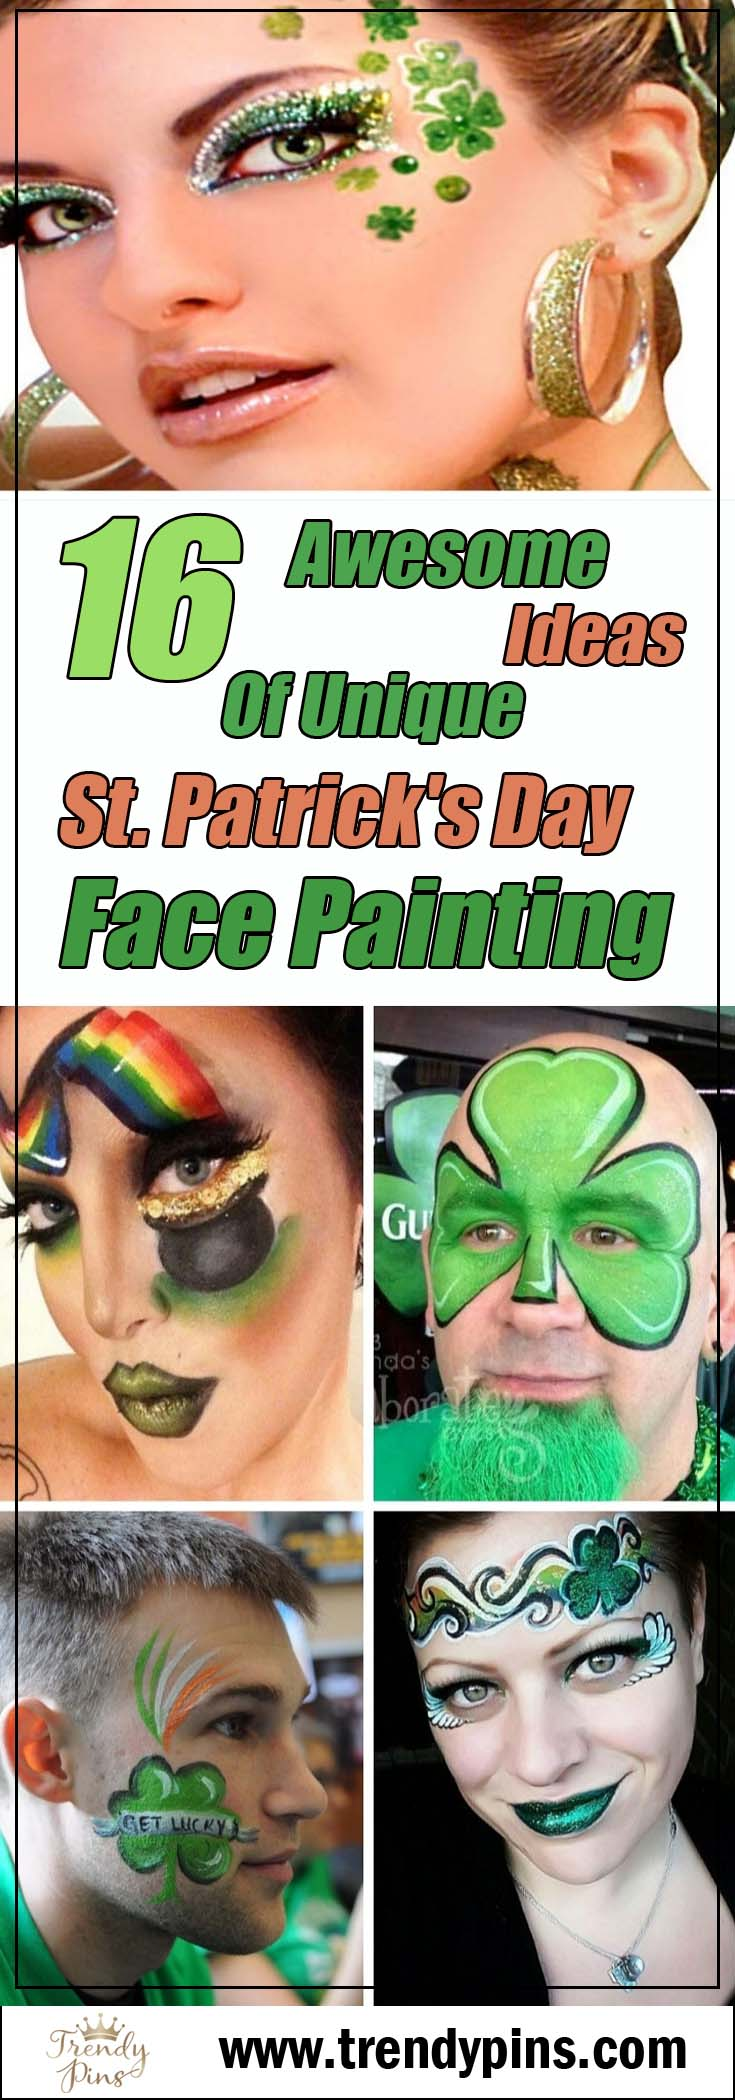 16 Awesome ideas of unique St. Patrick's Day face painting